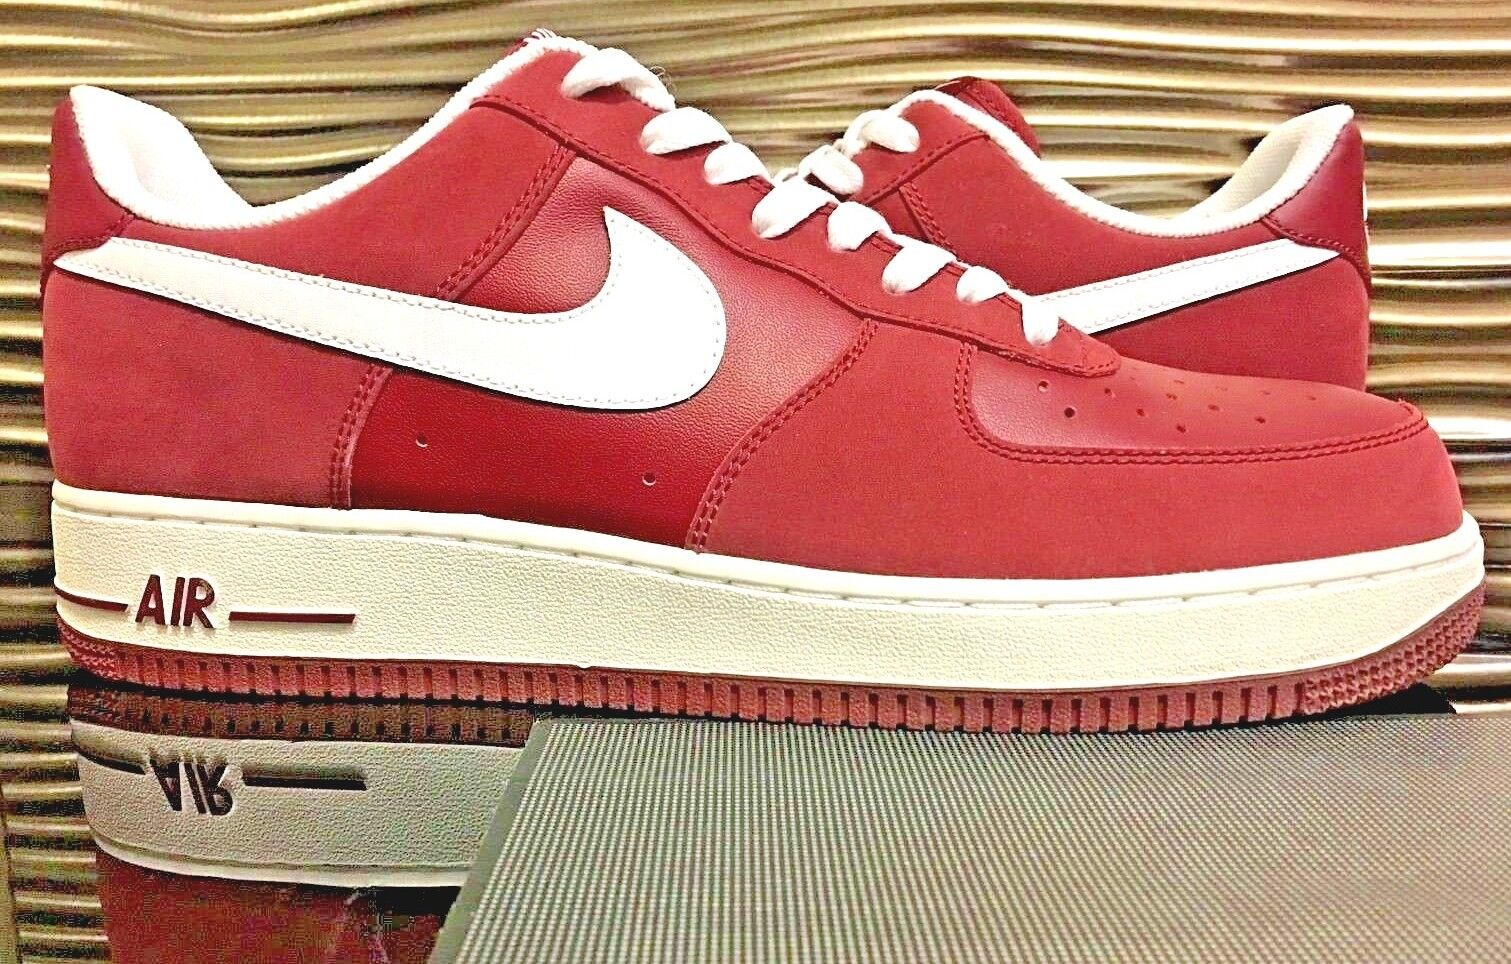 2007 Nike Air Force 1 Supreme Red Suede DS Men's Size 11.5 leather 315122 611